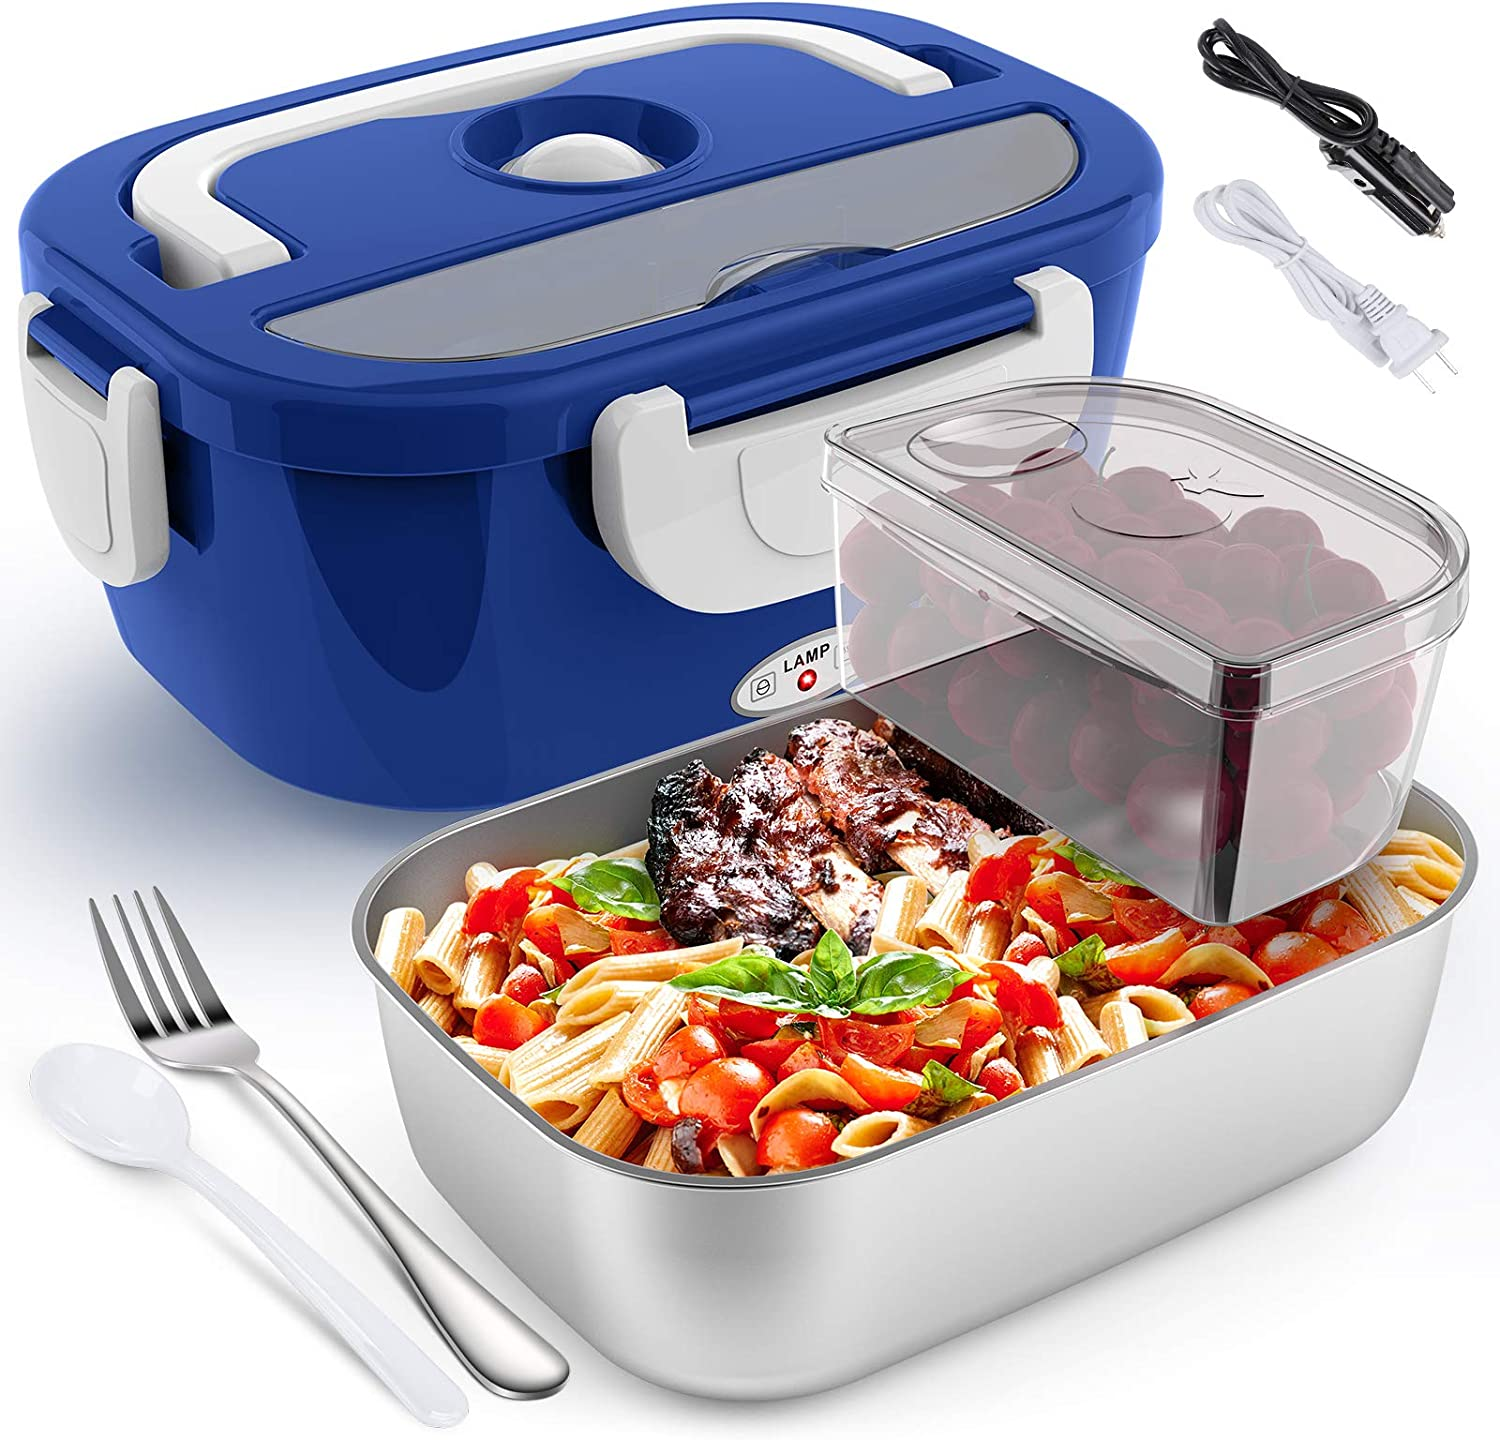 Electric Lunch Box for Car and Home COCOBELA Portable Food Warmer, 55W Faster Food Heater for Adults, 2 Compartments Removable Stainless Steel Container Fork & Spoon